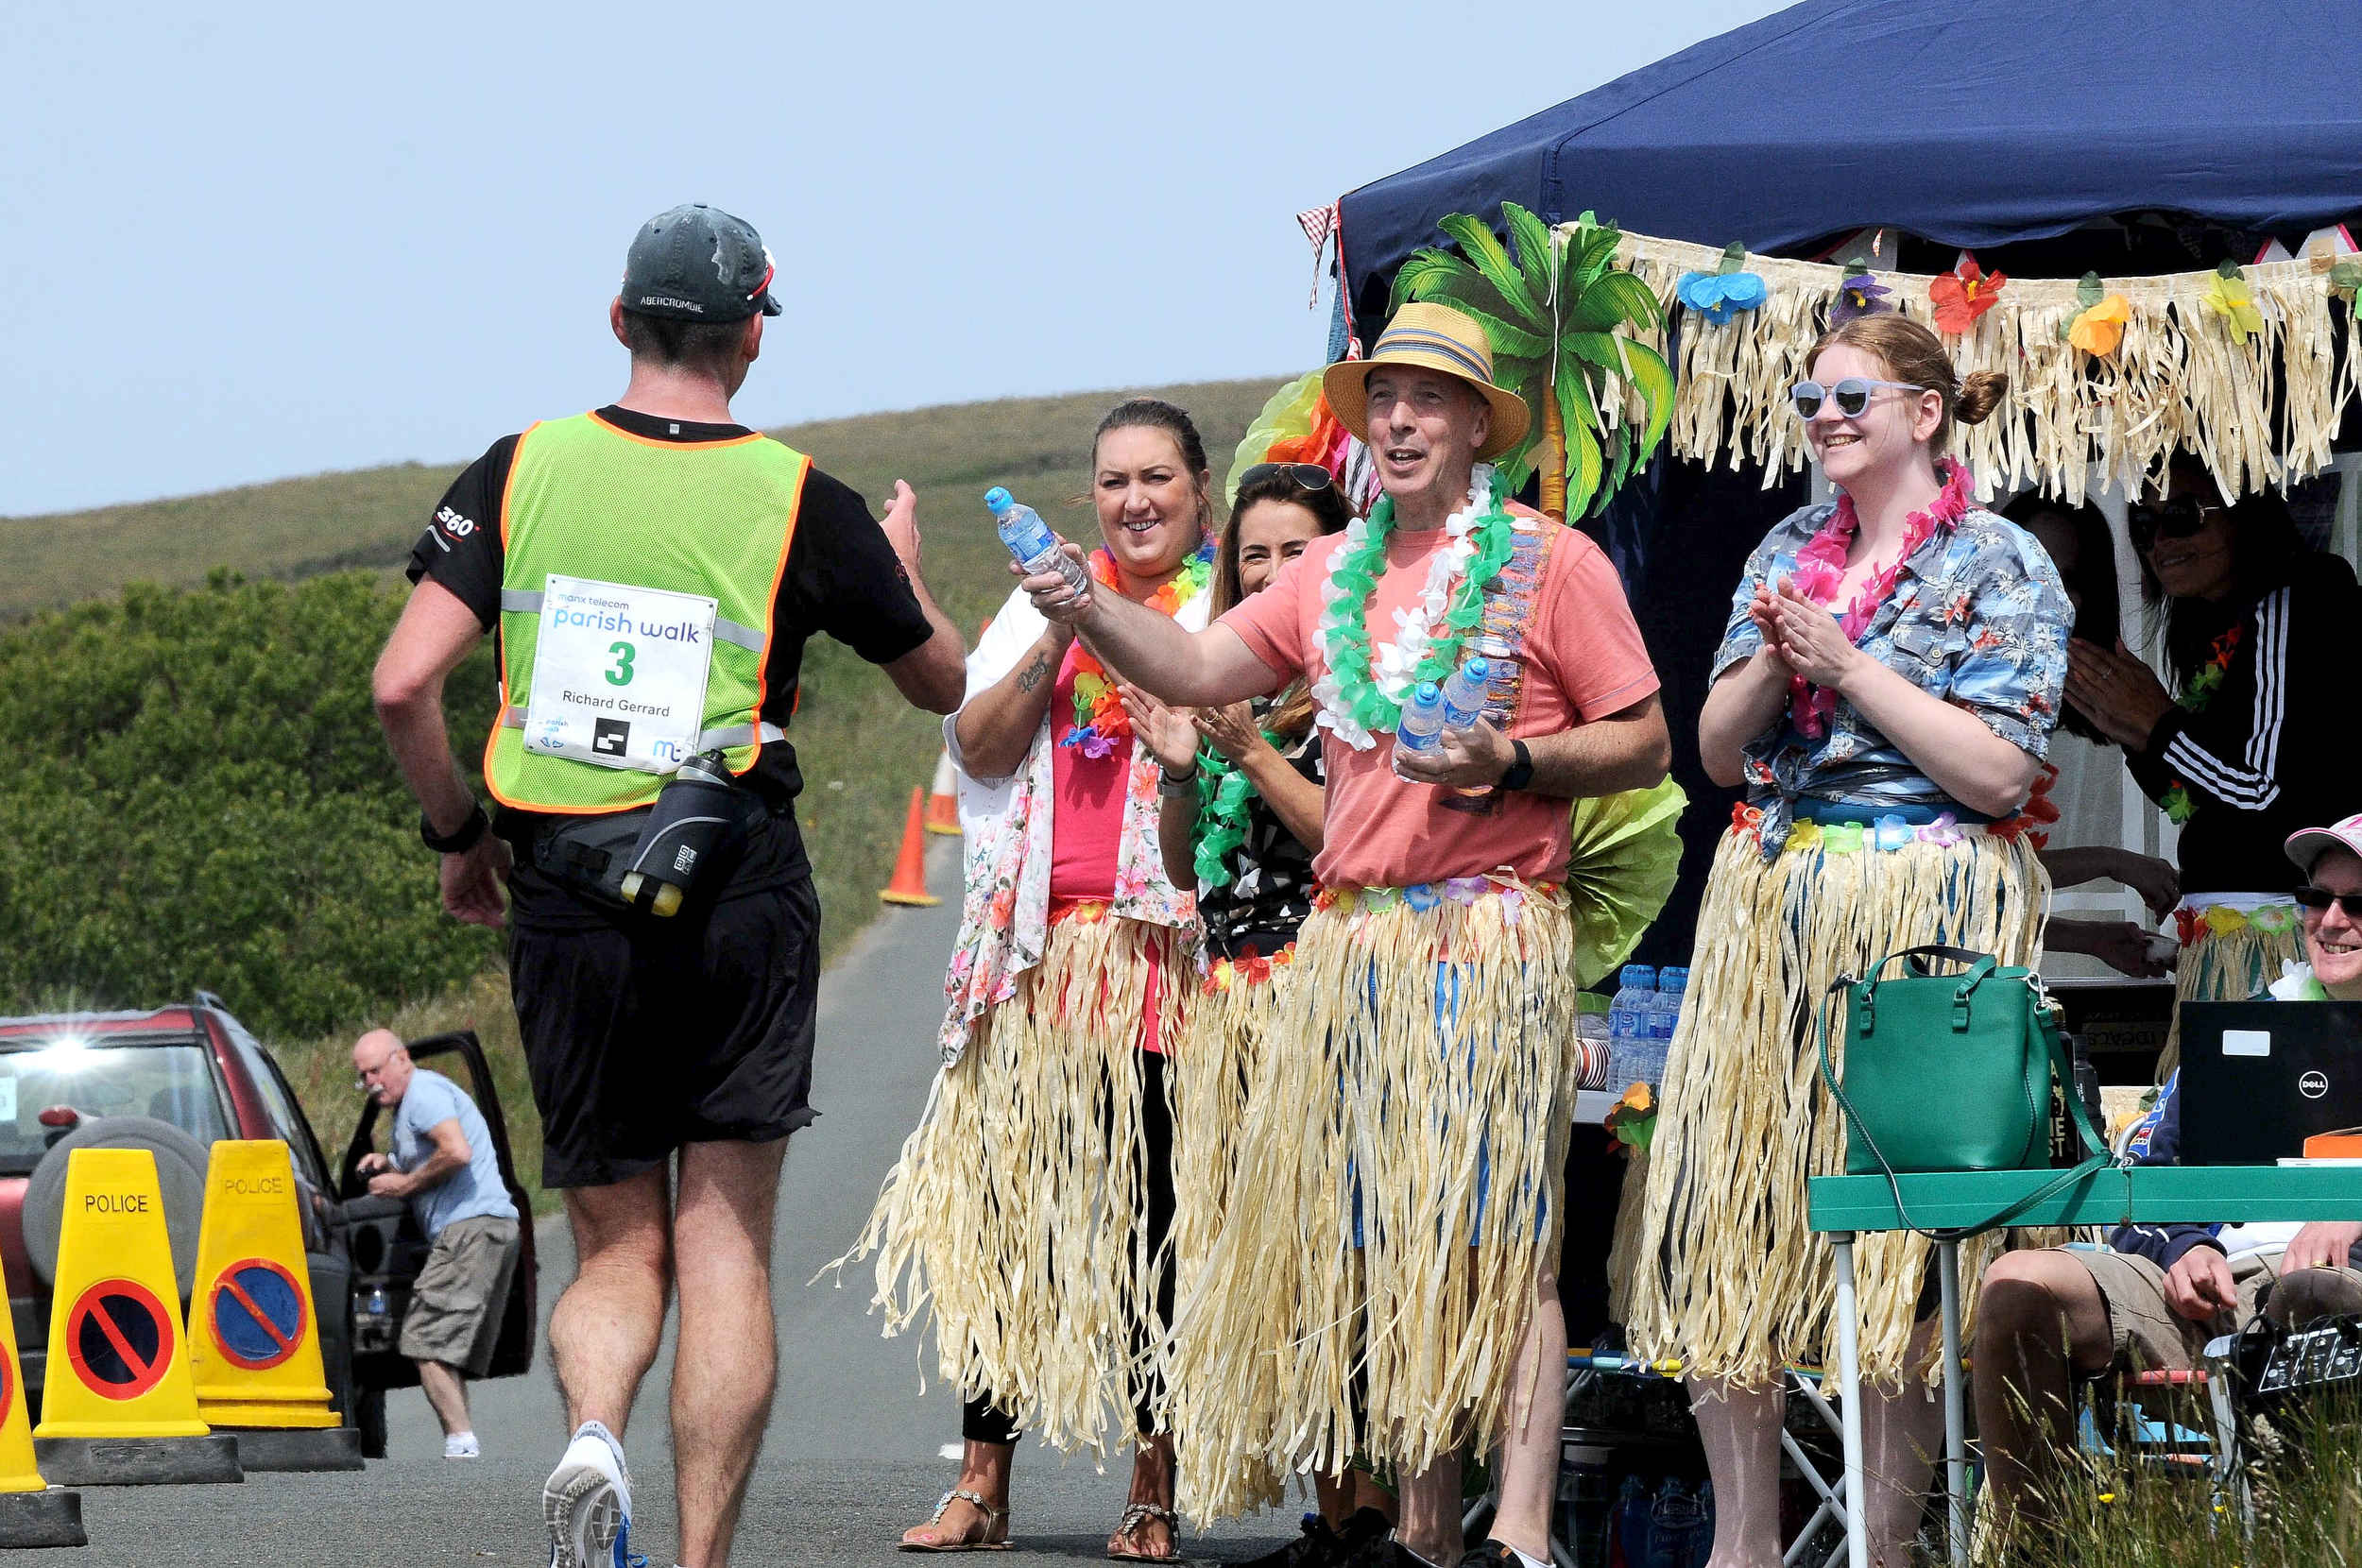 Race walker Richard Gerrard accepts a drink from the staff of First Names Group, who created an 'Oasis' at Eary Cushlin to support competitors in the Parish Walk